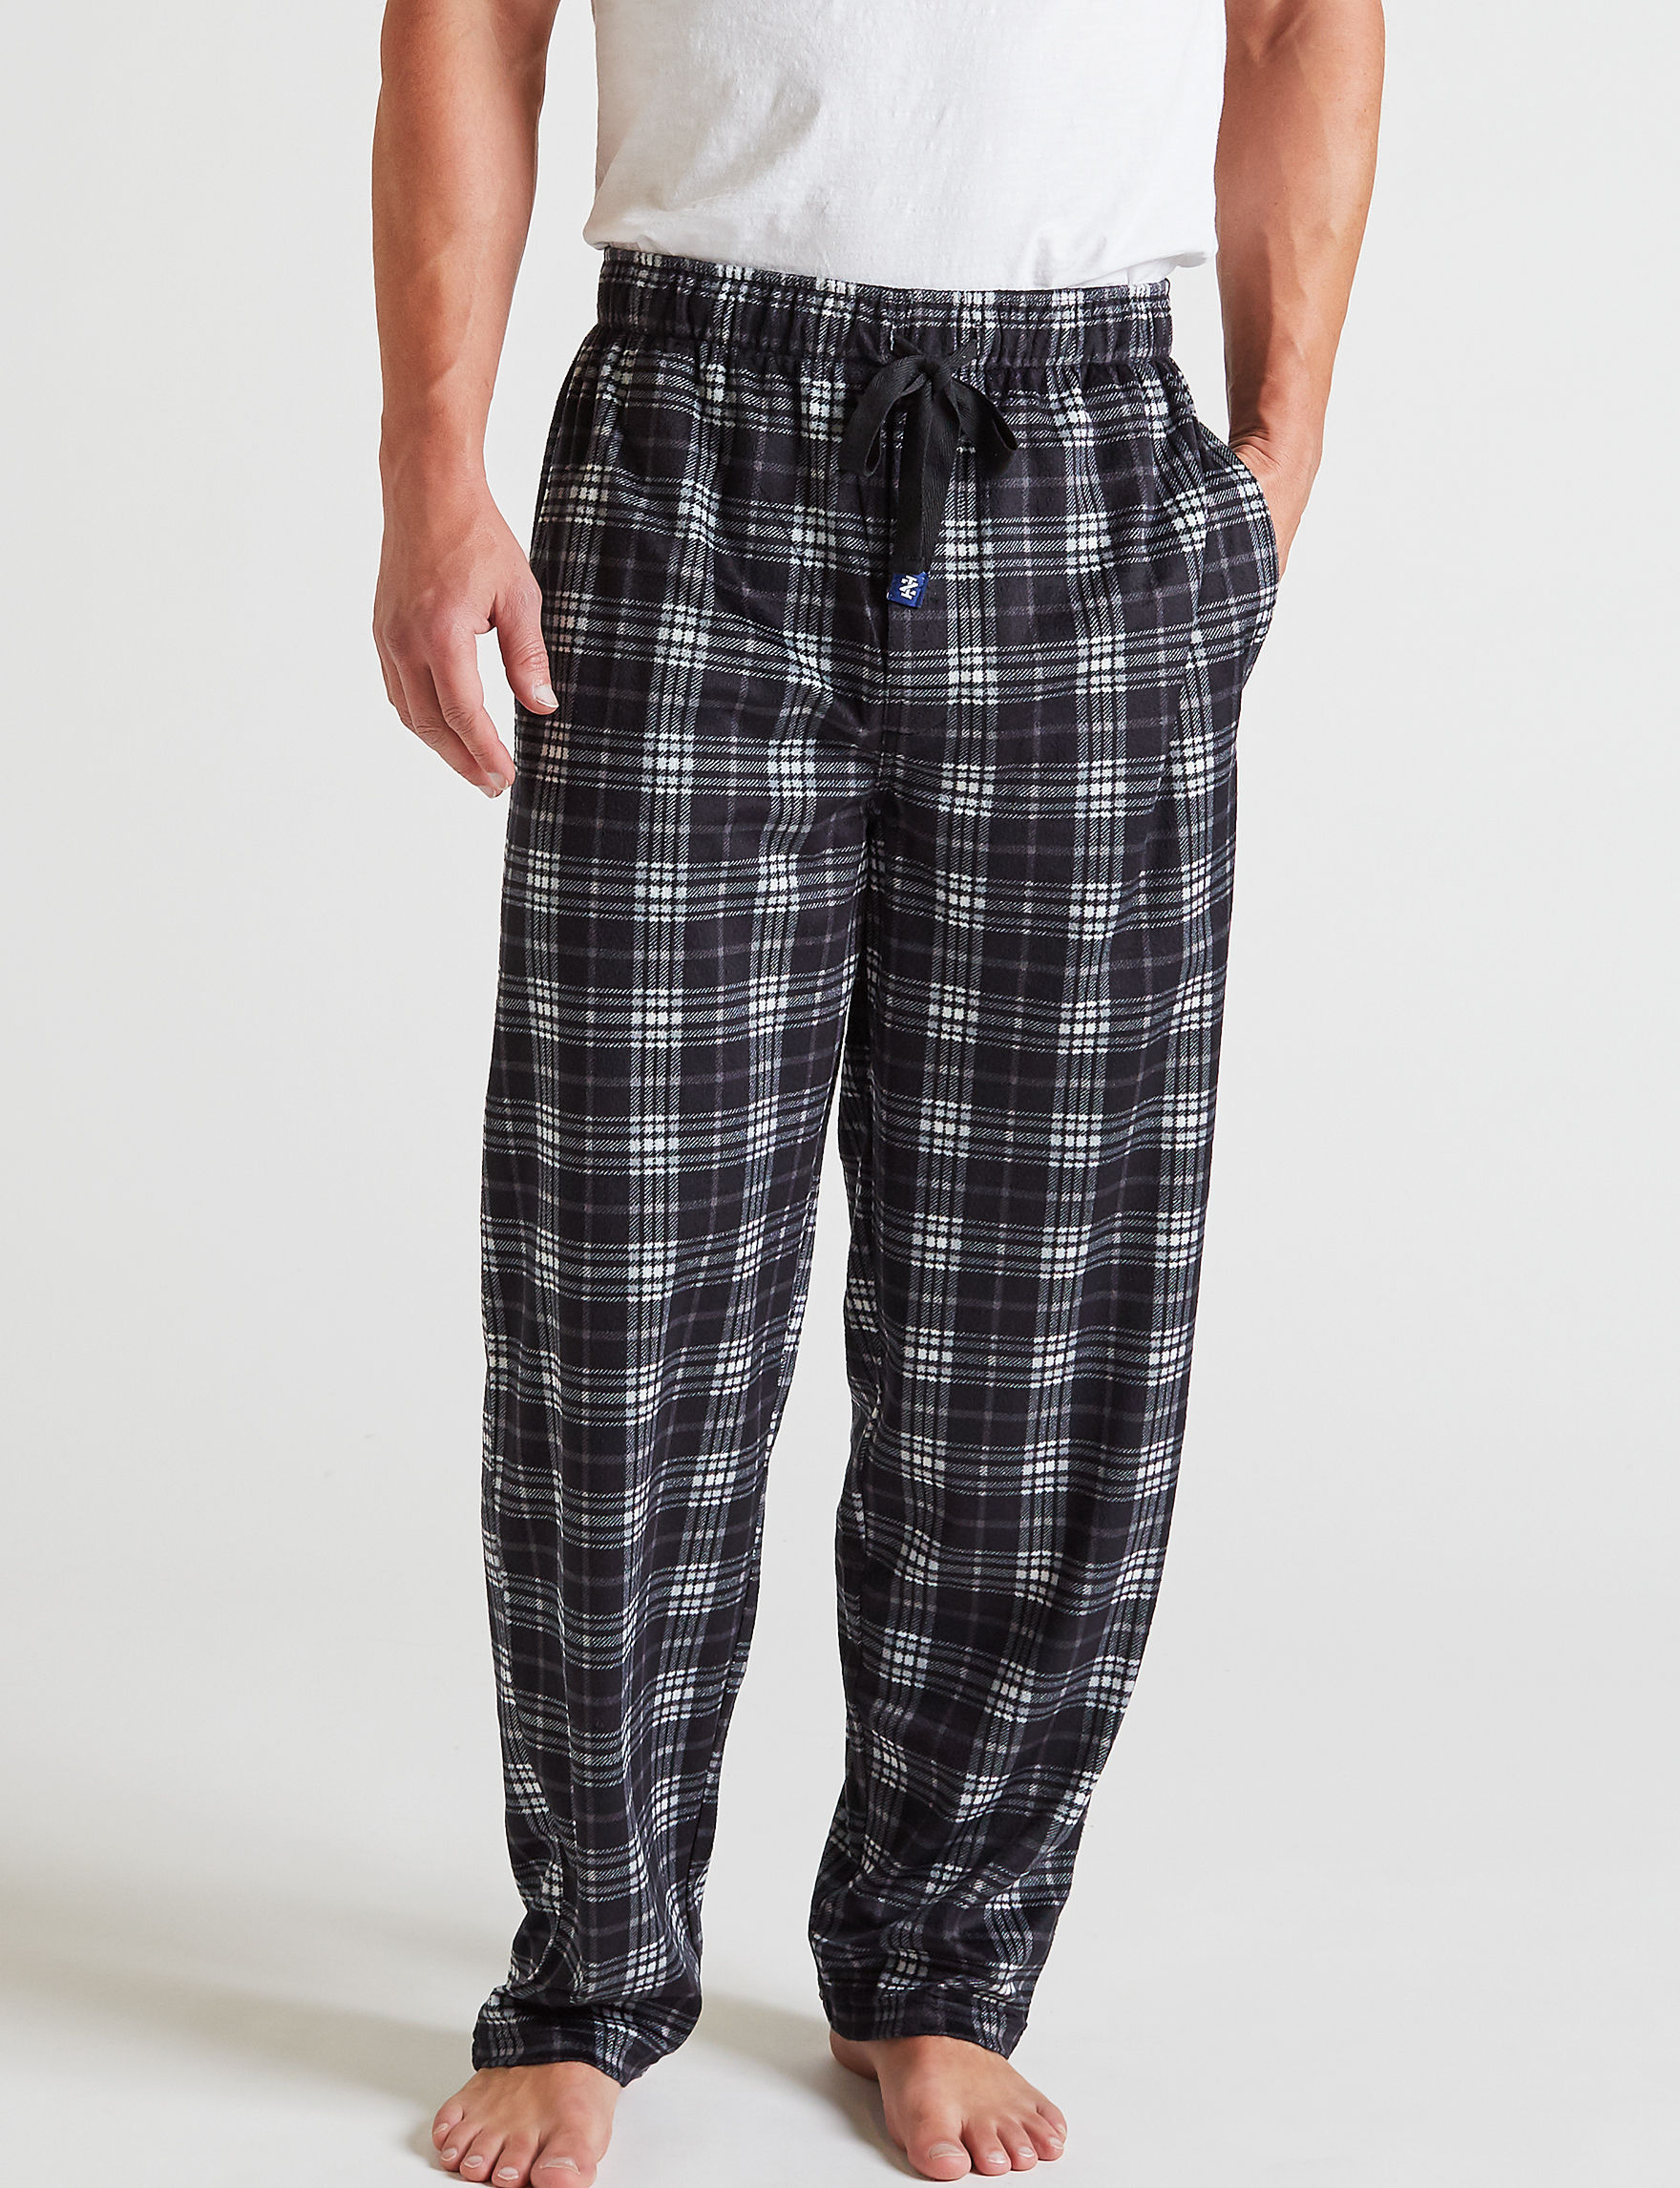 Izod Black / White Pajama Bottoms